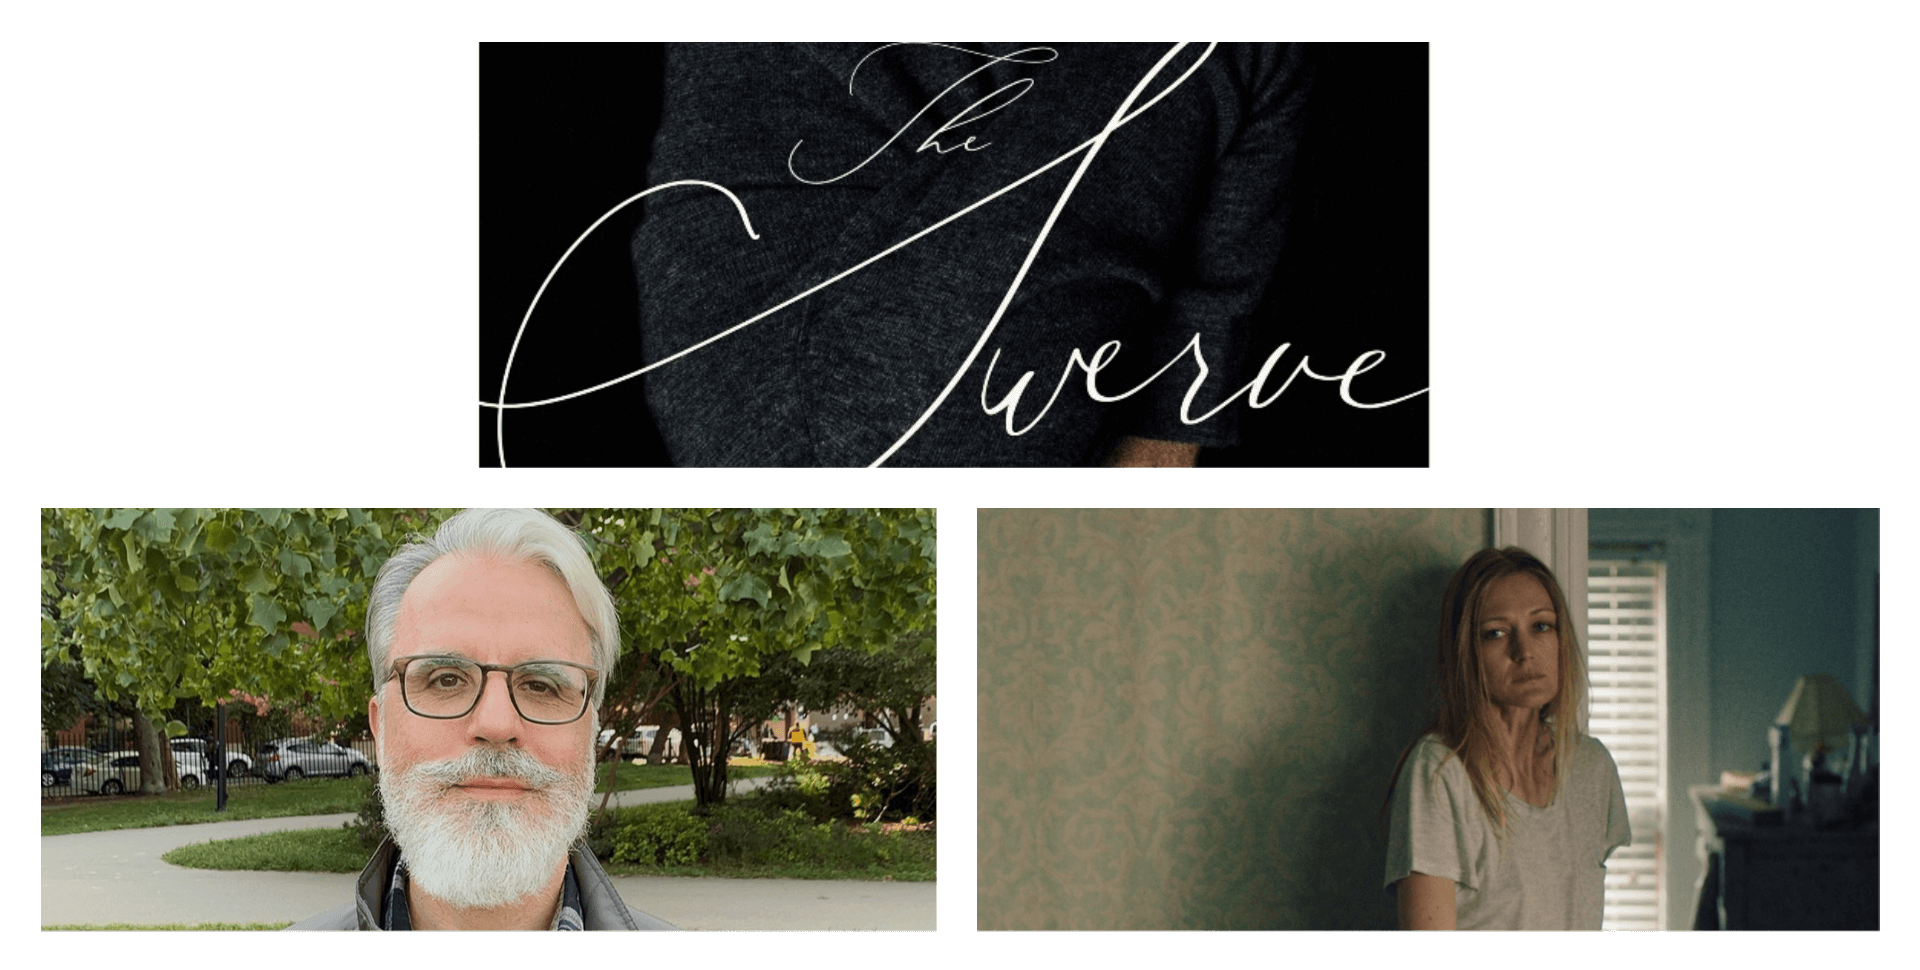 Interview with 'The Swerve' Film Director Dean Kapsalis